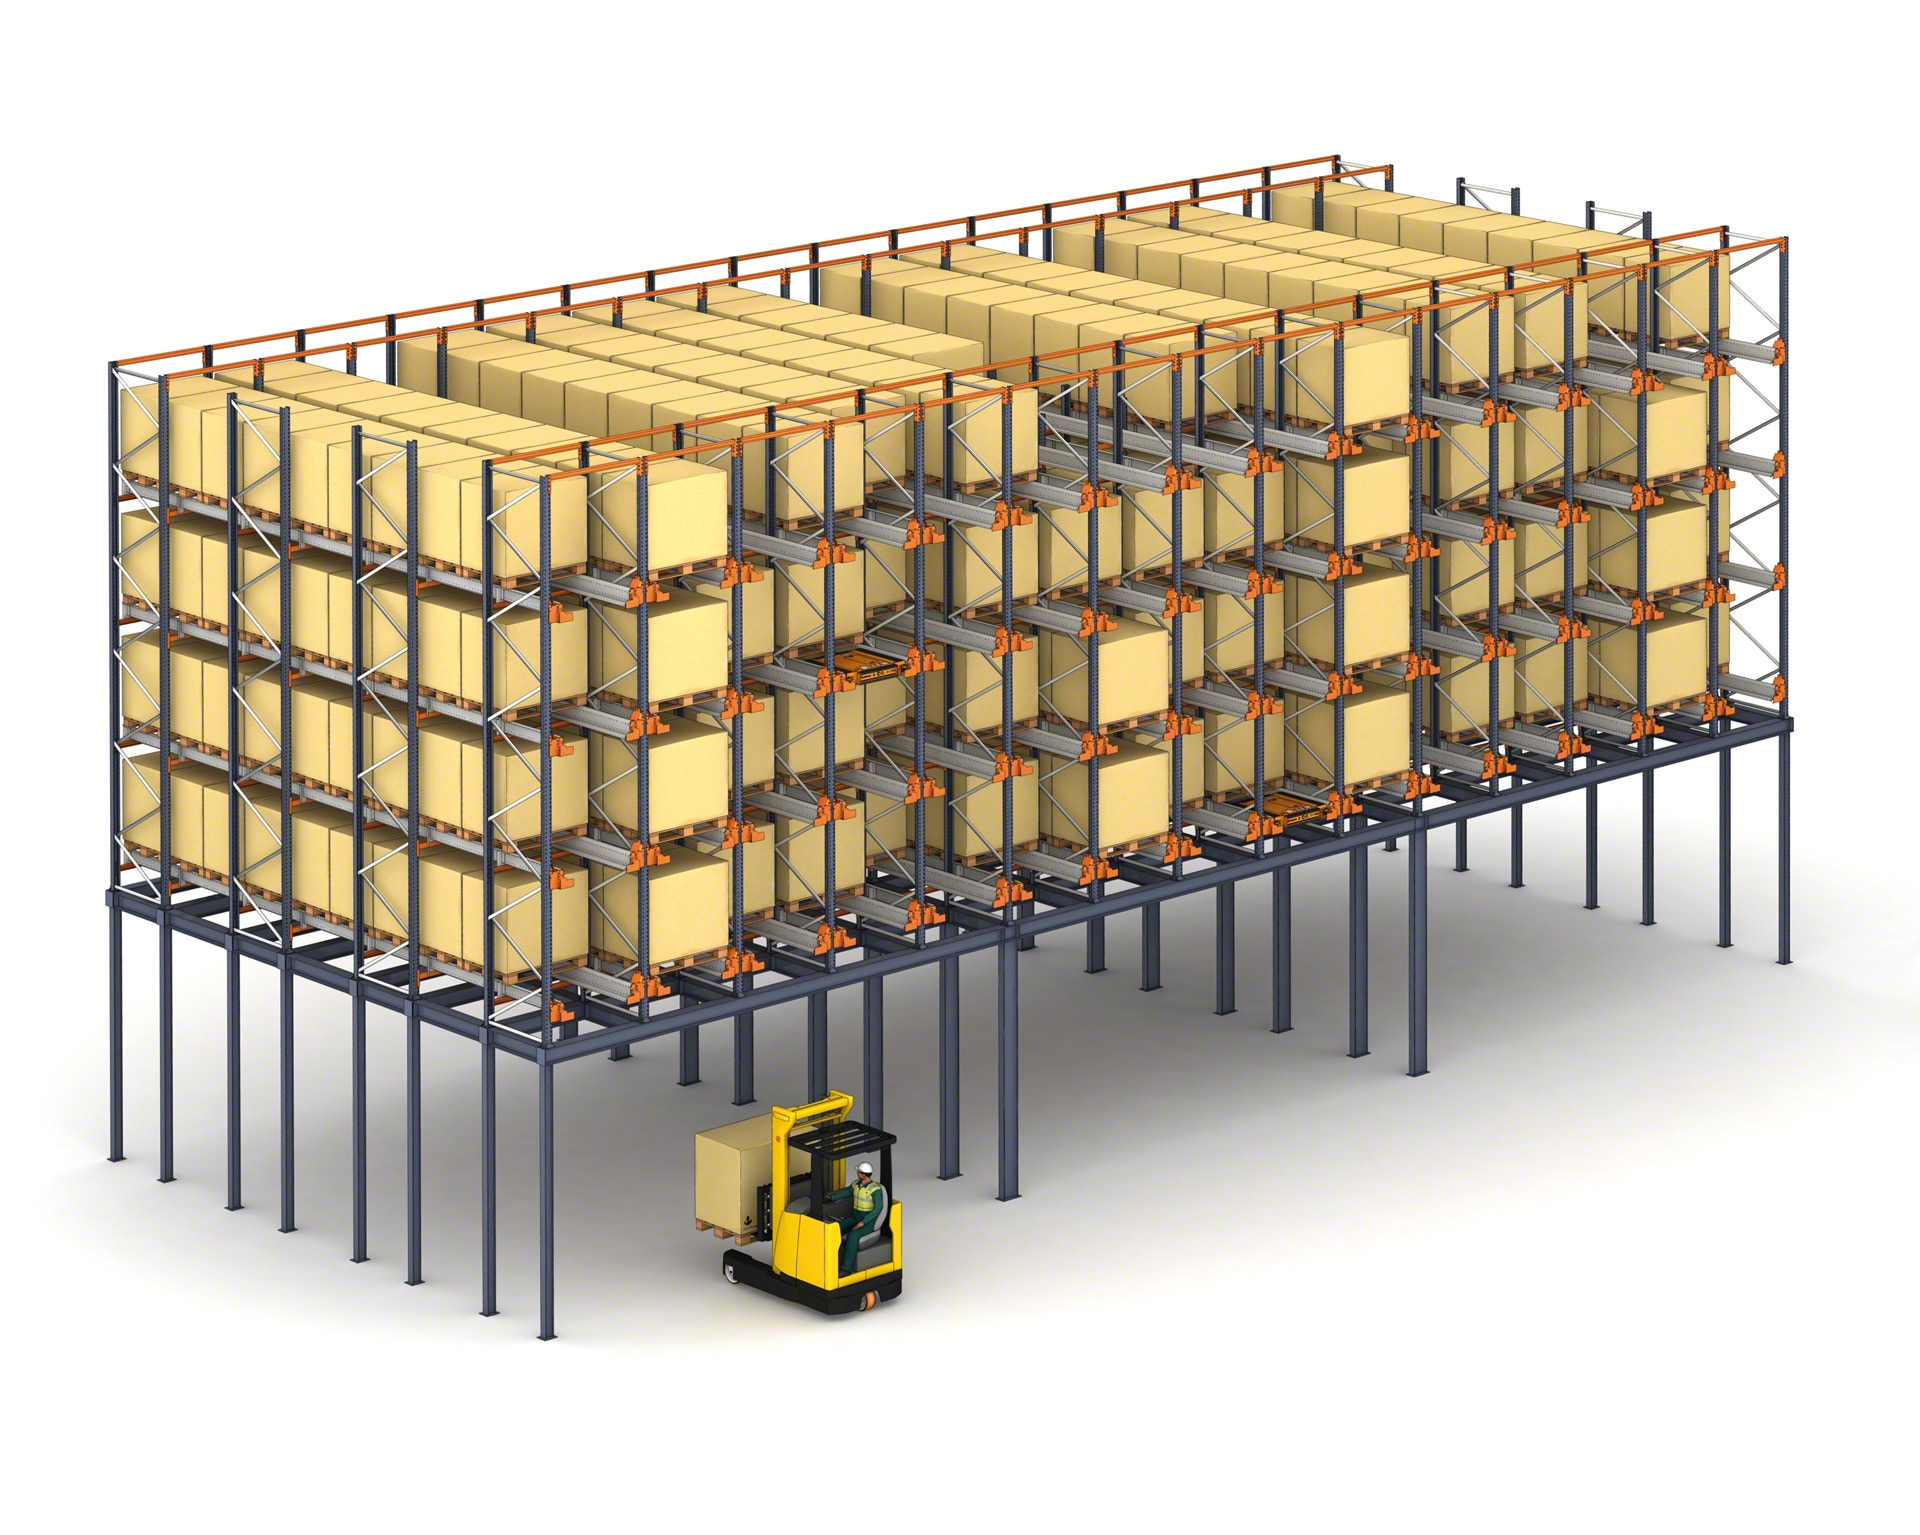 In warehouses with limited space, the Pallet Shuttle system can be installed on a mezzanine floor to maximize the surface